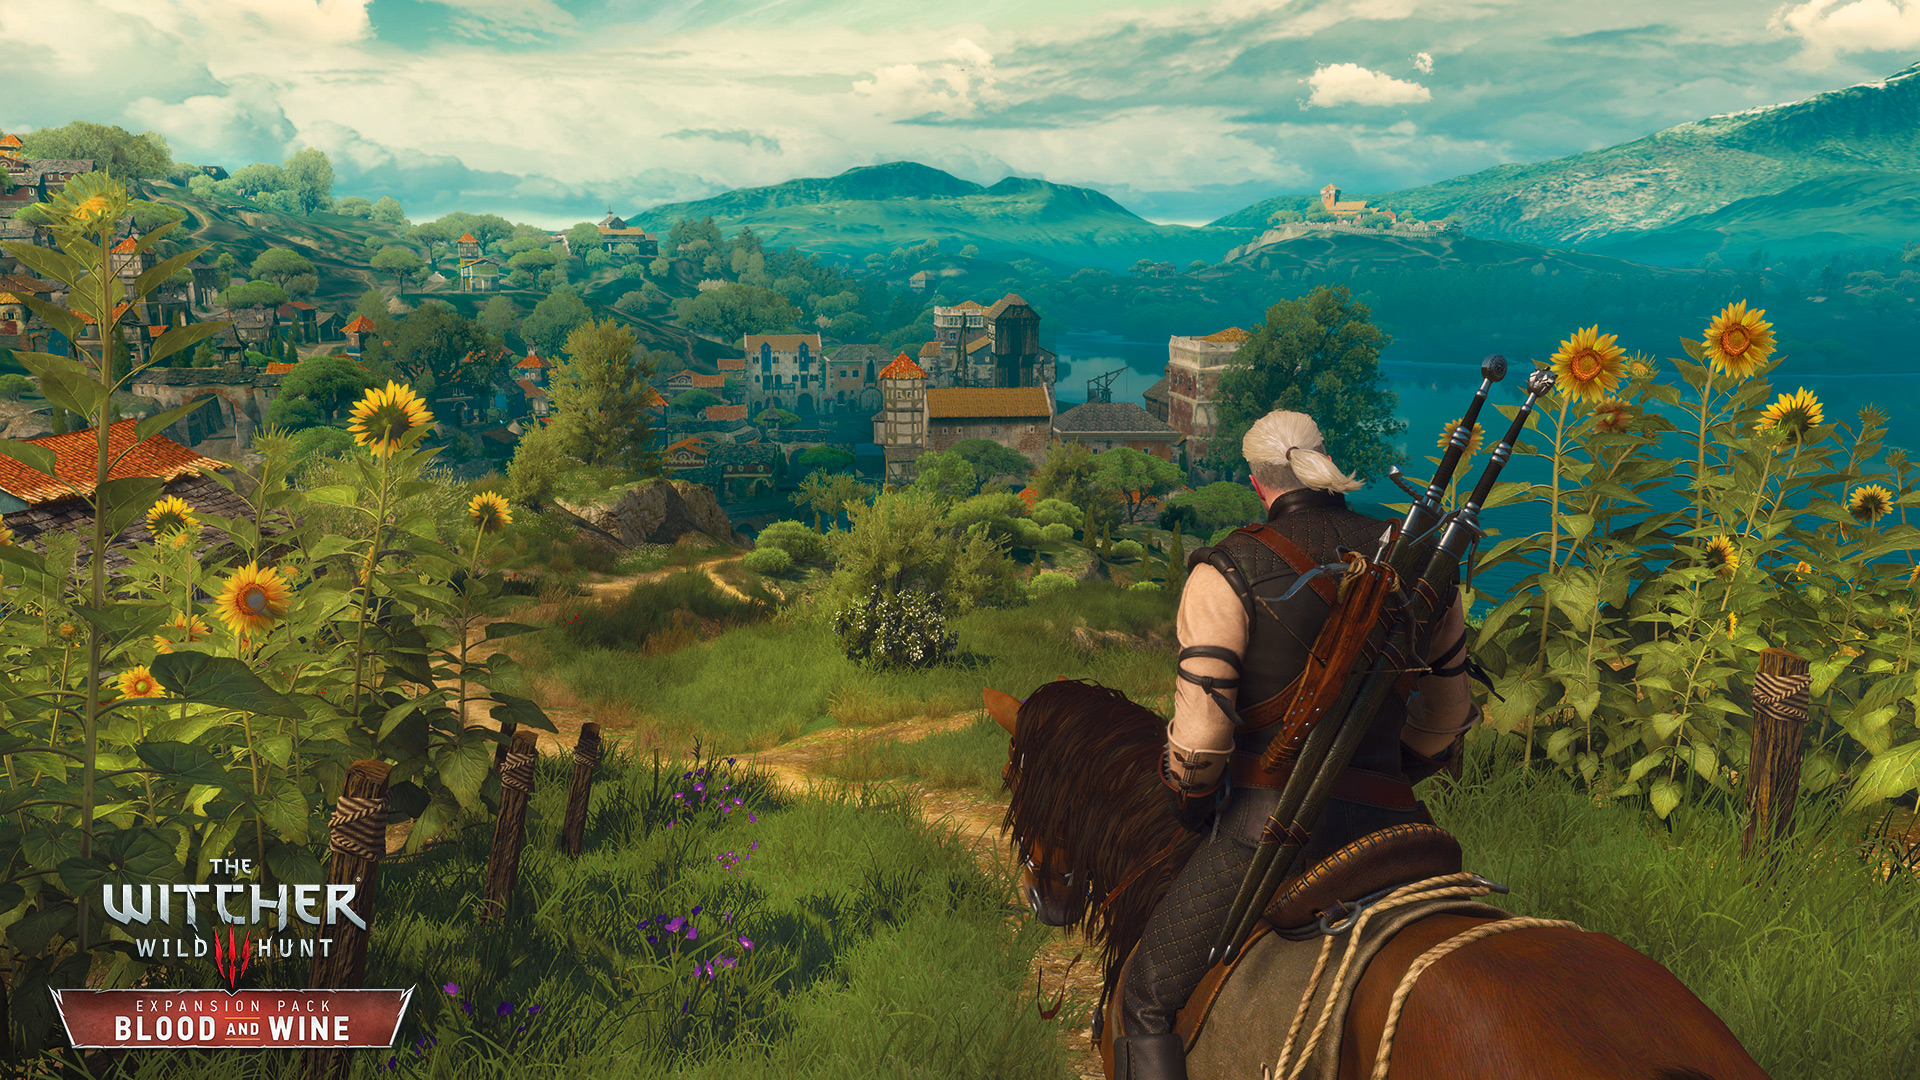 The_Witcher_3_Wild_Hunt_Blood_and_Wine_Toussaint_is_full_of_places_just_waiting_to_be_discovered_RGB_EN.0